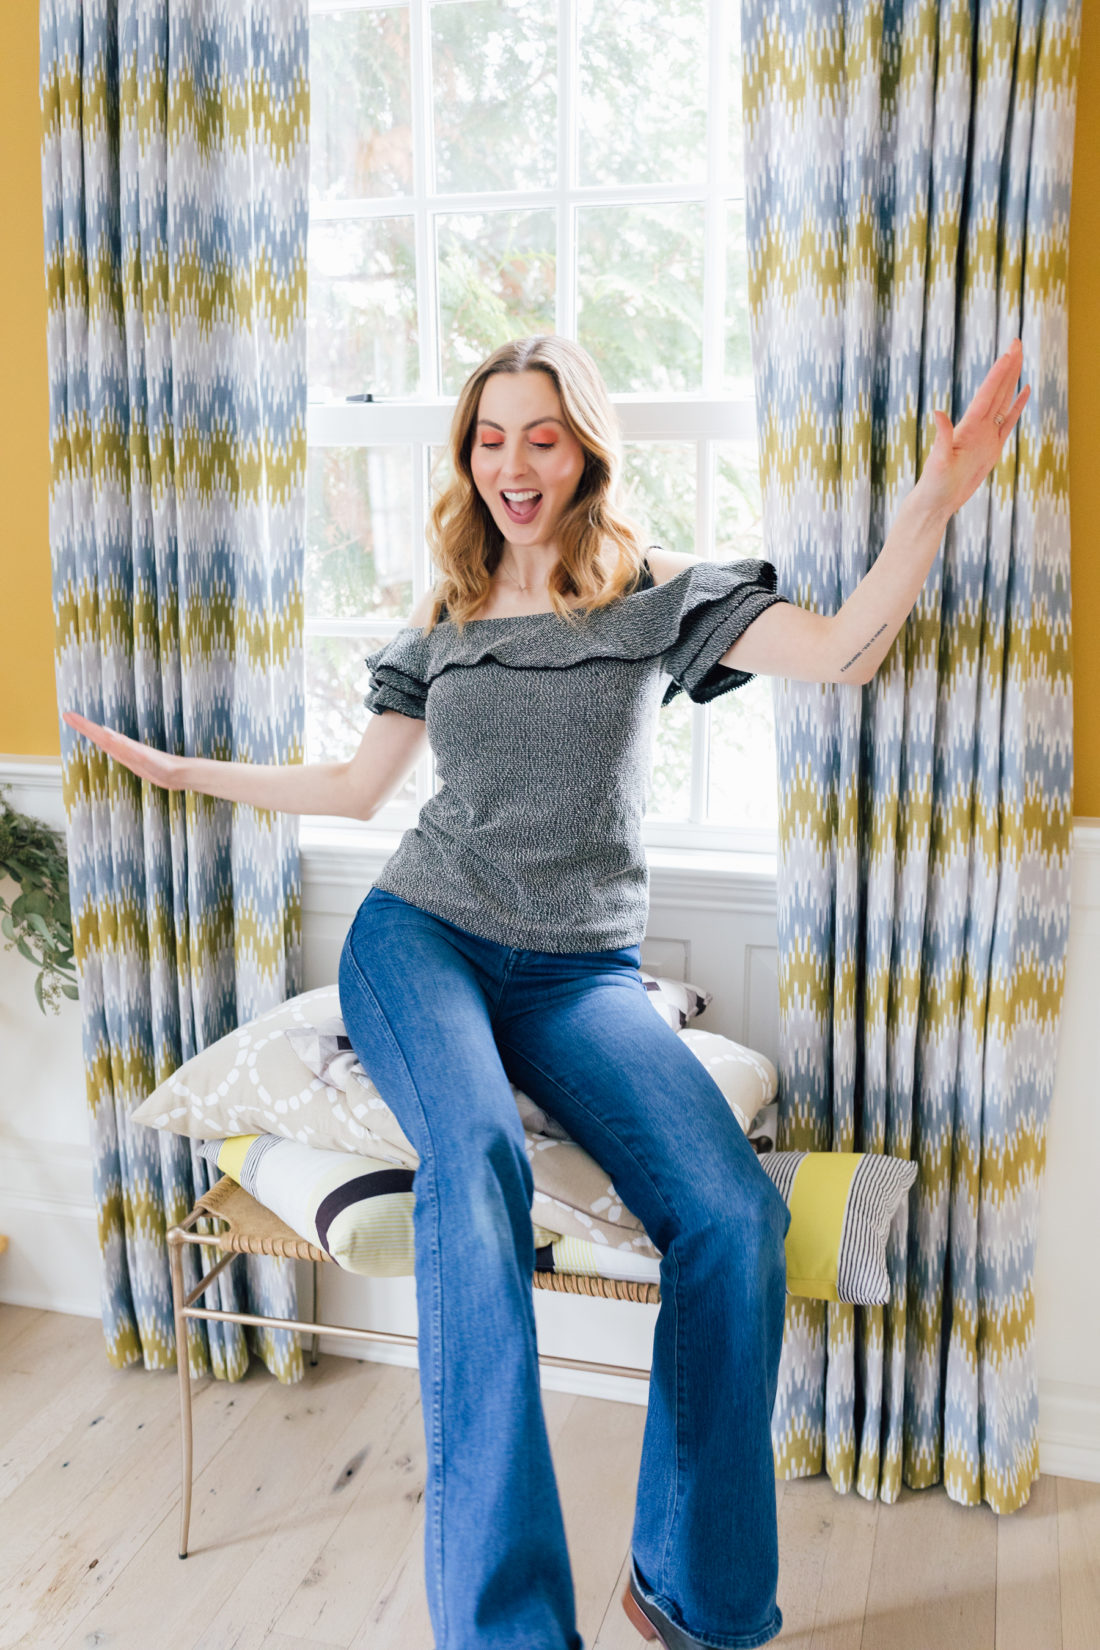 Eva Amurri Martino sits atop a stack of decorative pillows as she prepares to pack up her connecticut home in the days before her family's move